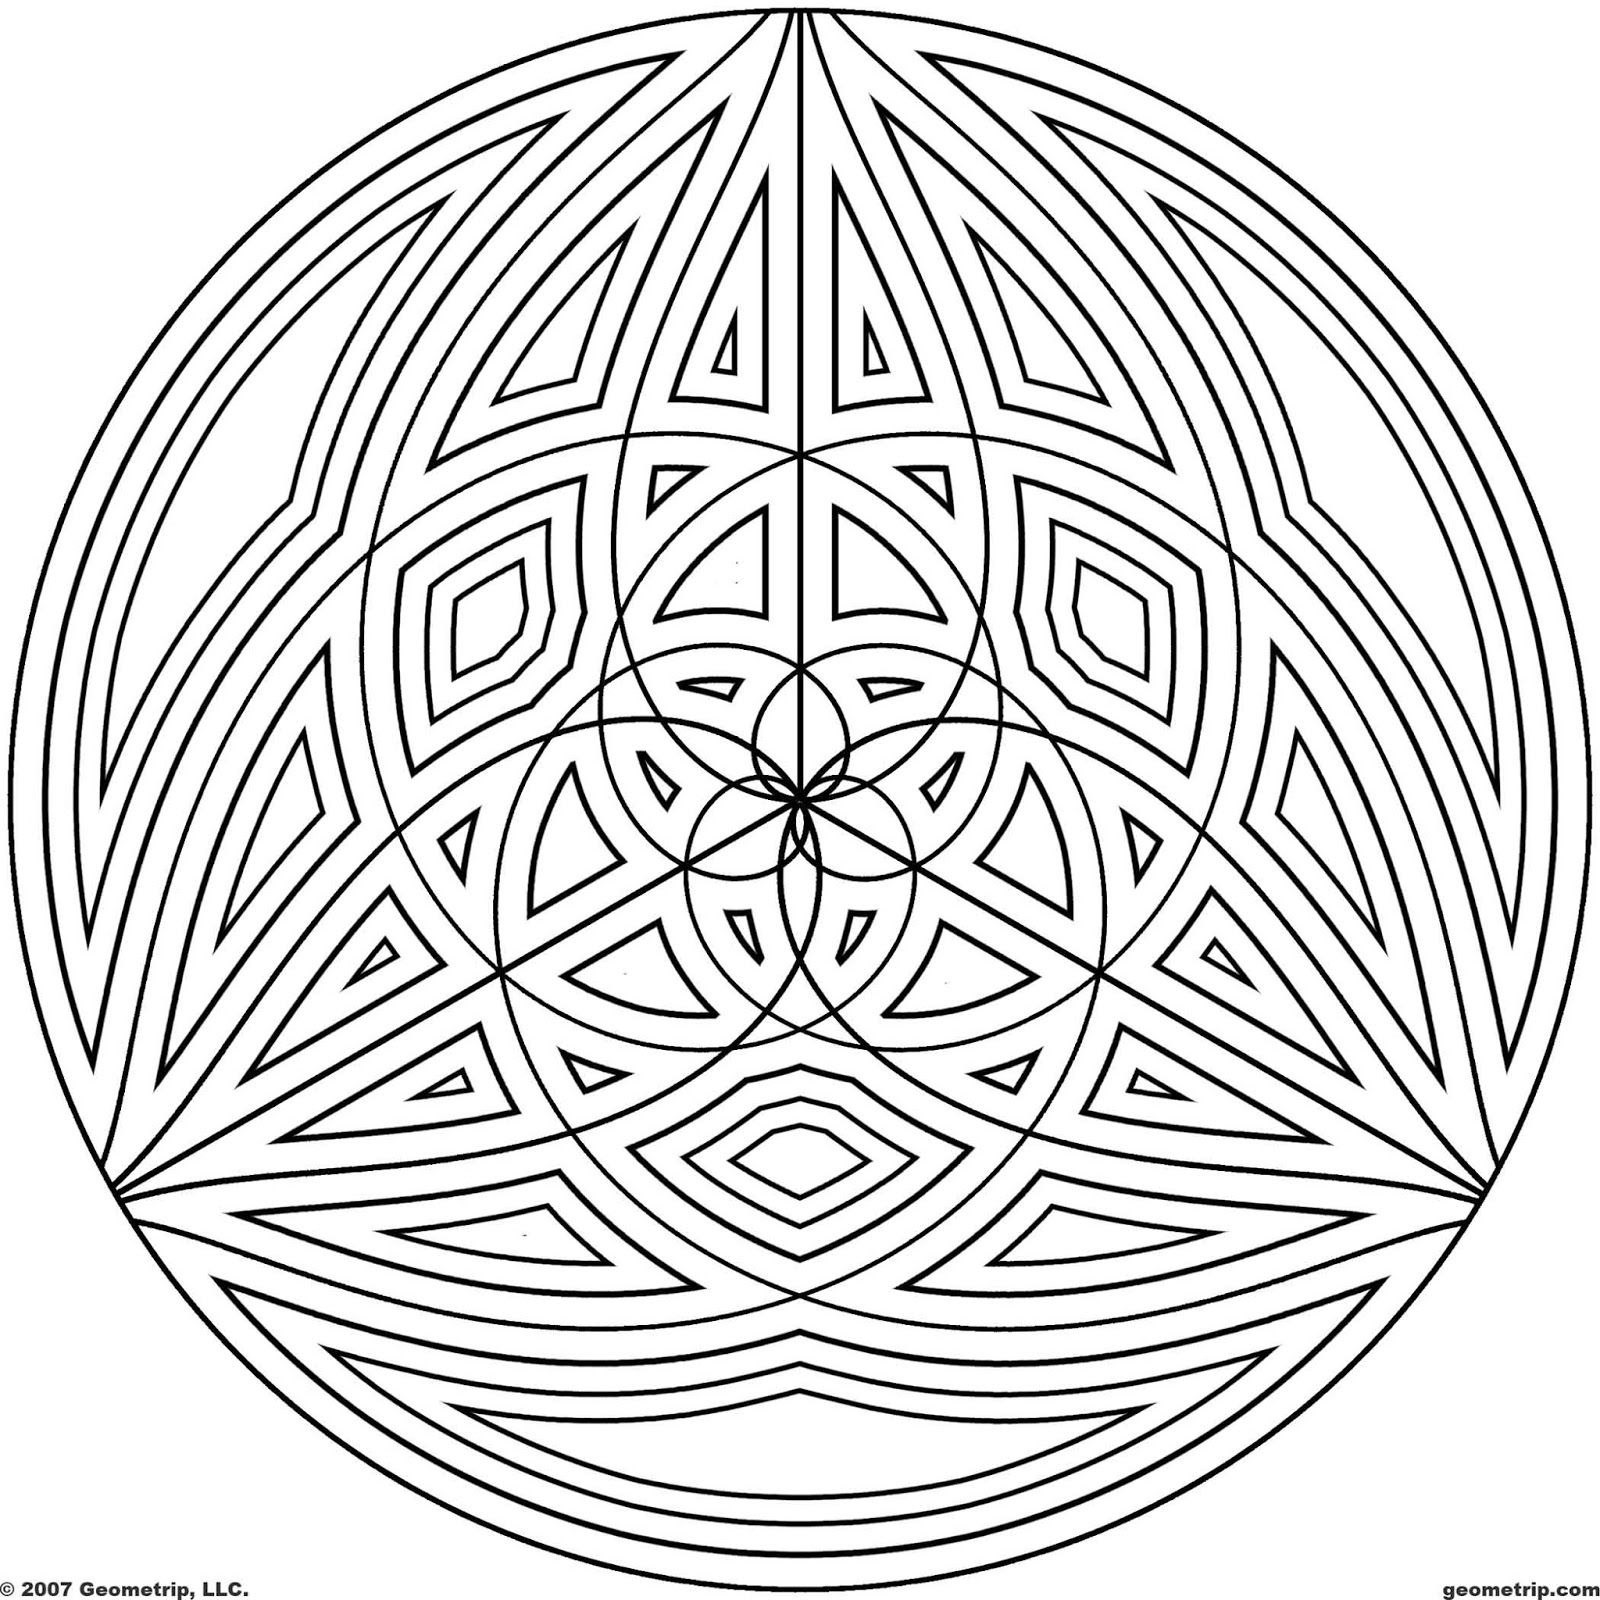 printable patterns to colour 16 cool coloring pages of designs images cool geometric to colour printable patterns